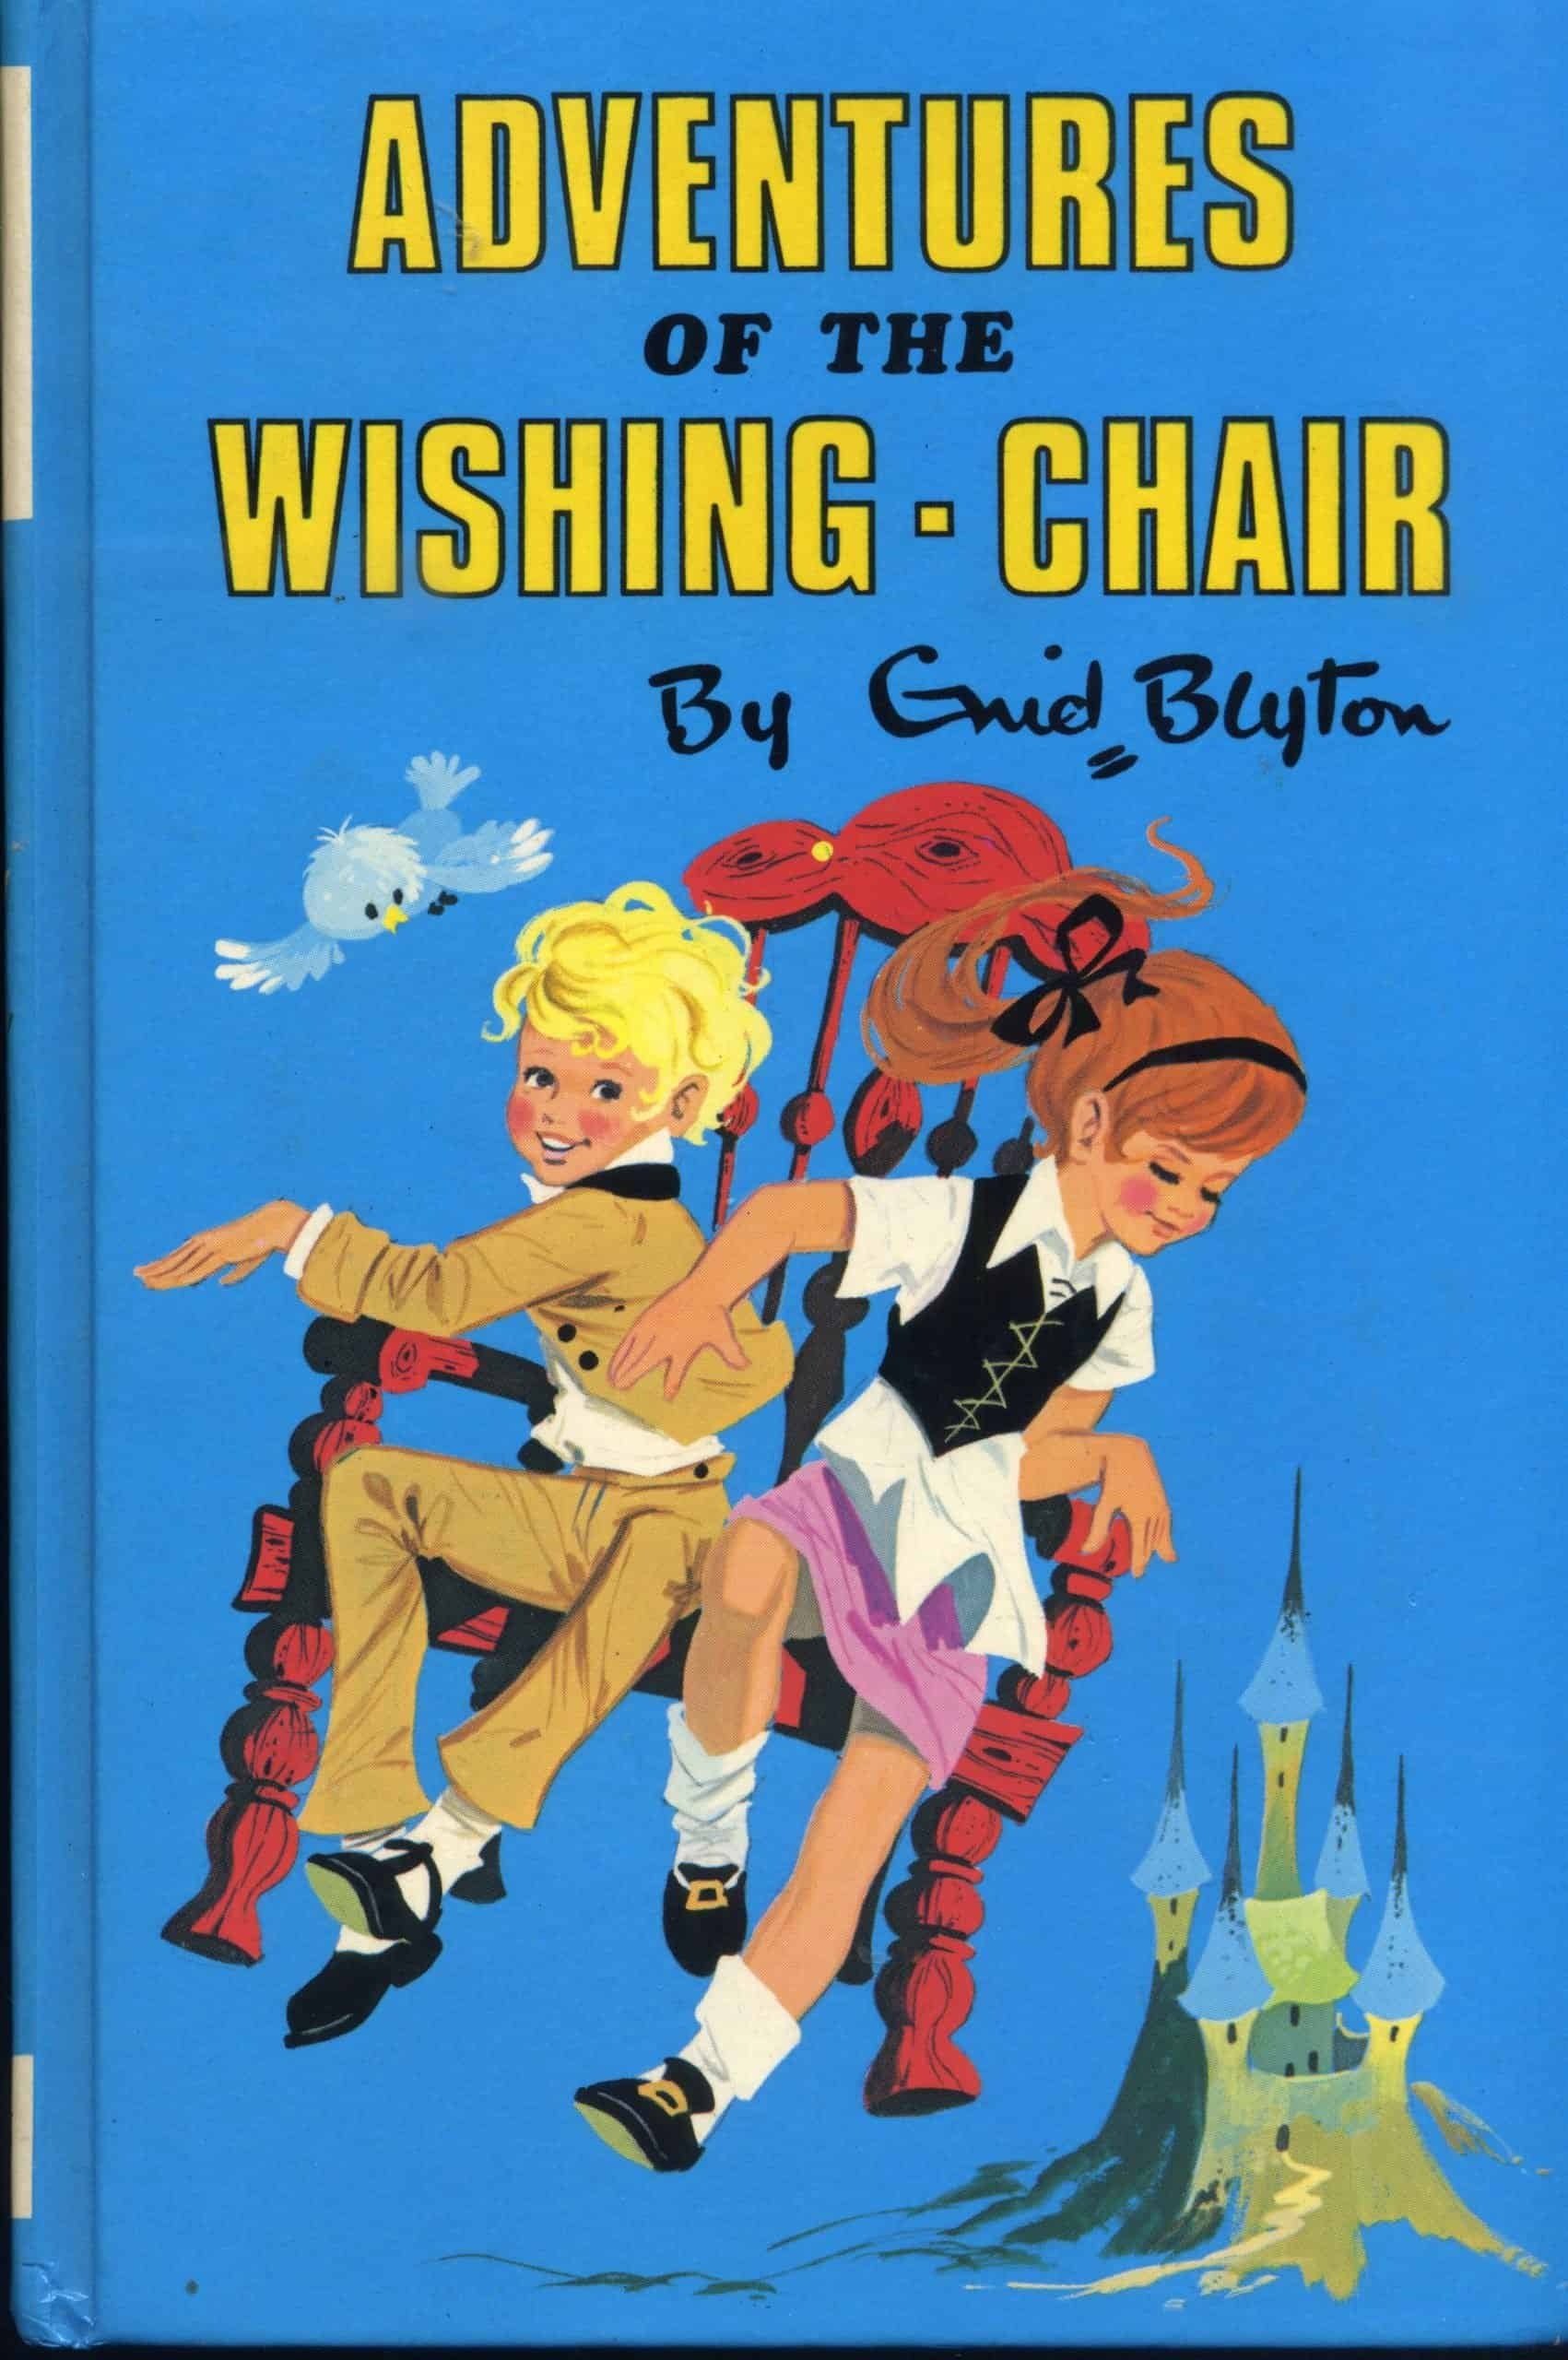 Adventures of the Wishing Chair Book Cover Enid Blyton